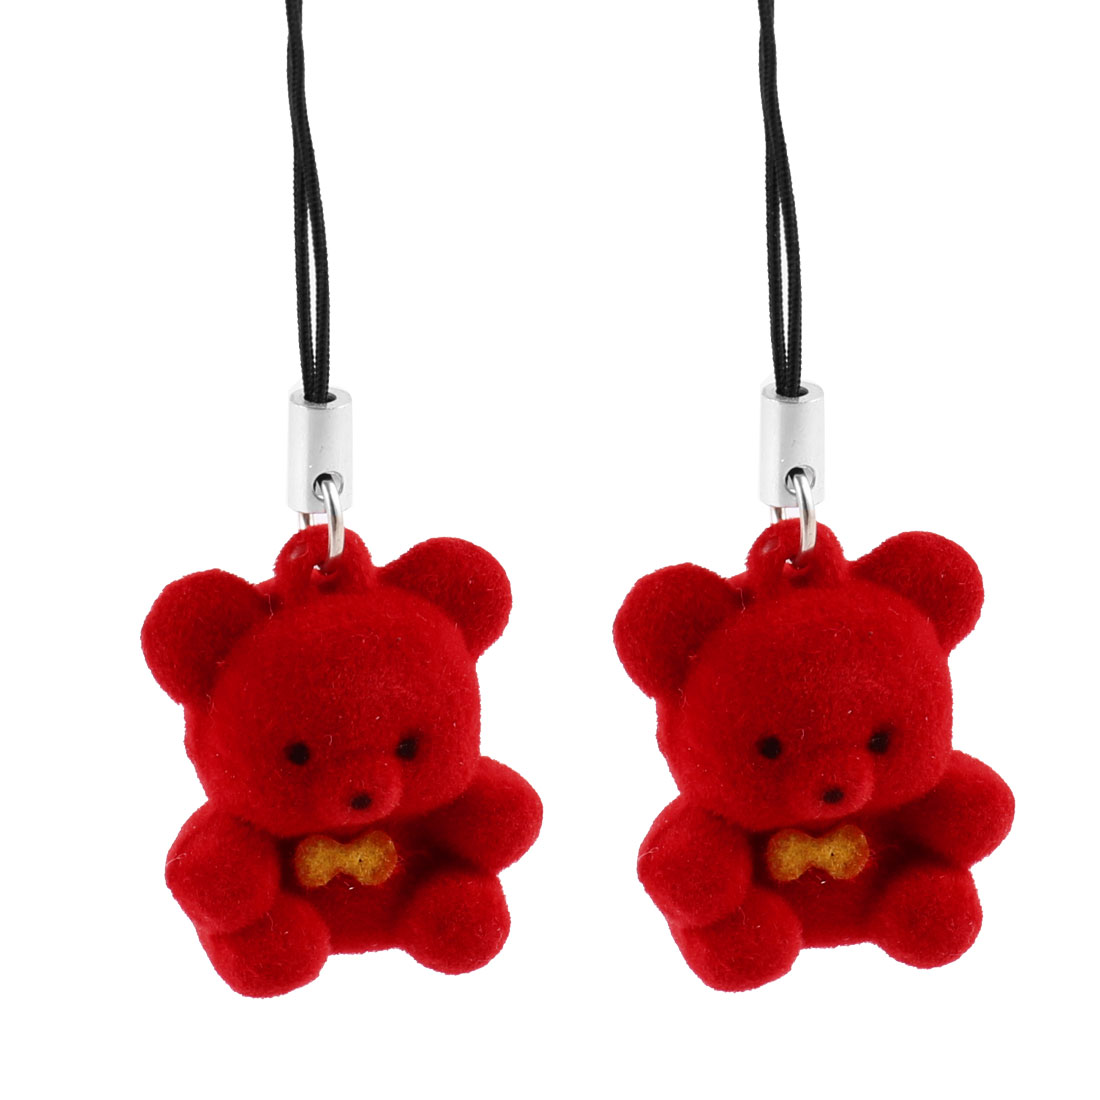 Red Bear Pendant Mobile Phone Strap String Hanging Decoration 2 Pcs